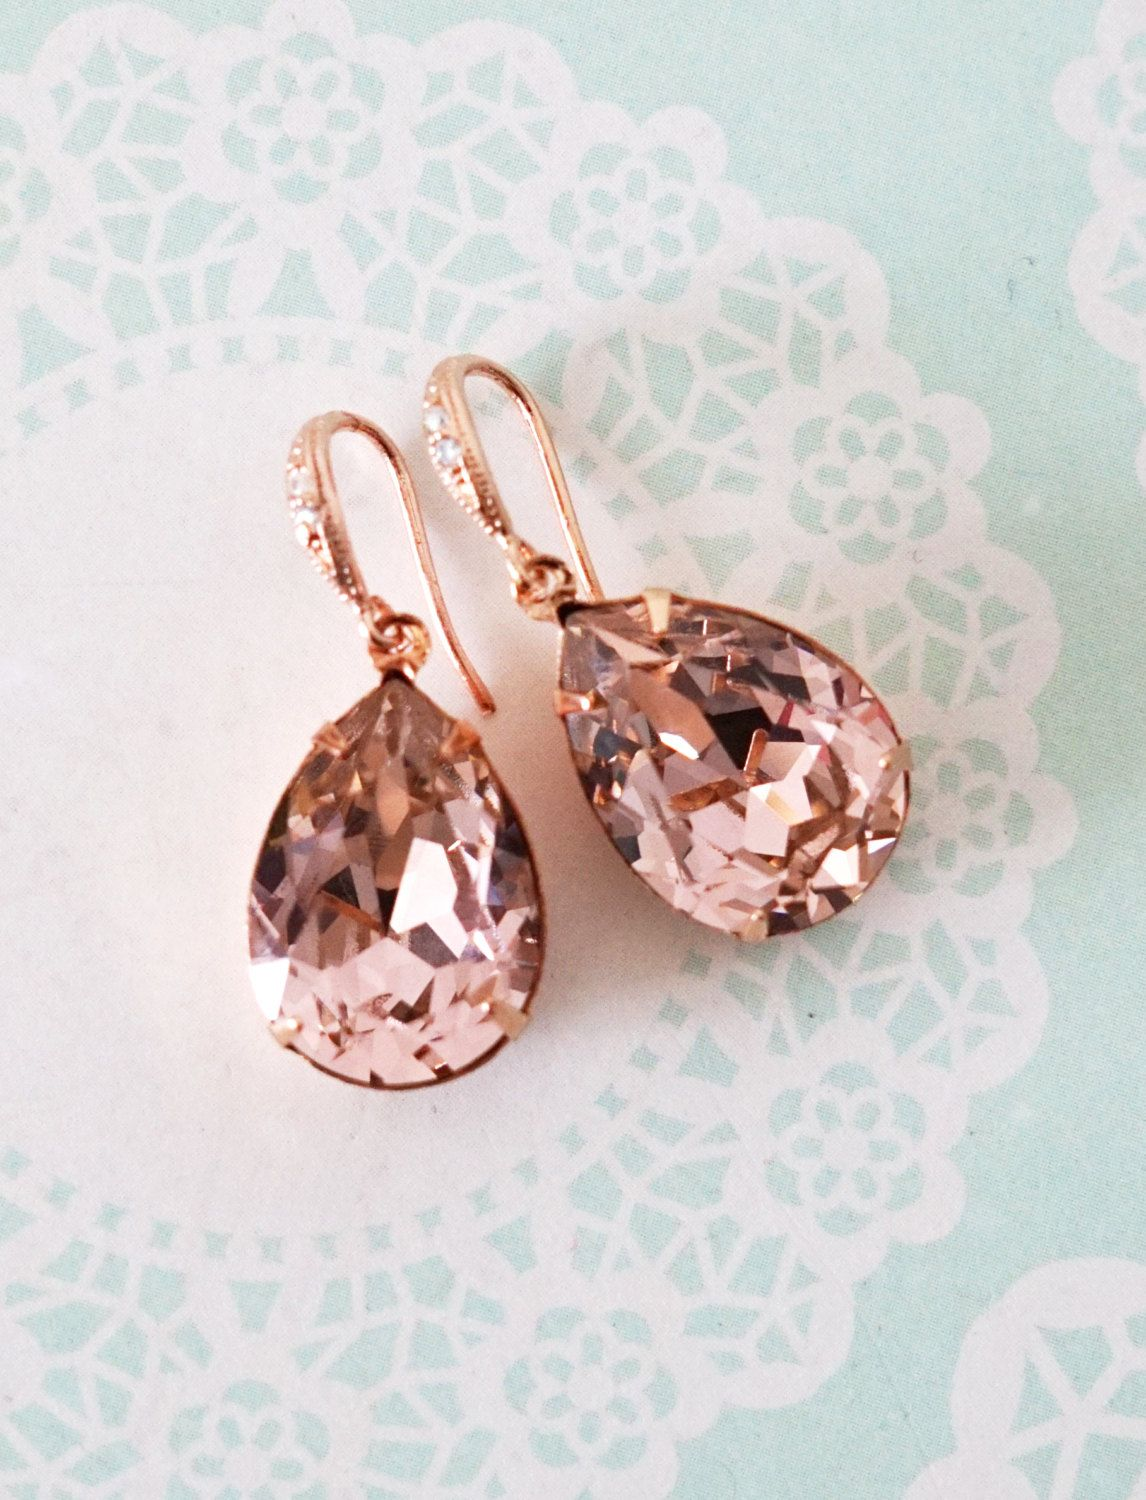 b457a5a6c6976 Vintage Rose Pink Swarovski Crystal Teardrop (13mm x 18 mm) in roes gold  plated closed back stone settings. Cubic zirconia Teardrop earrings